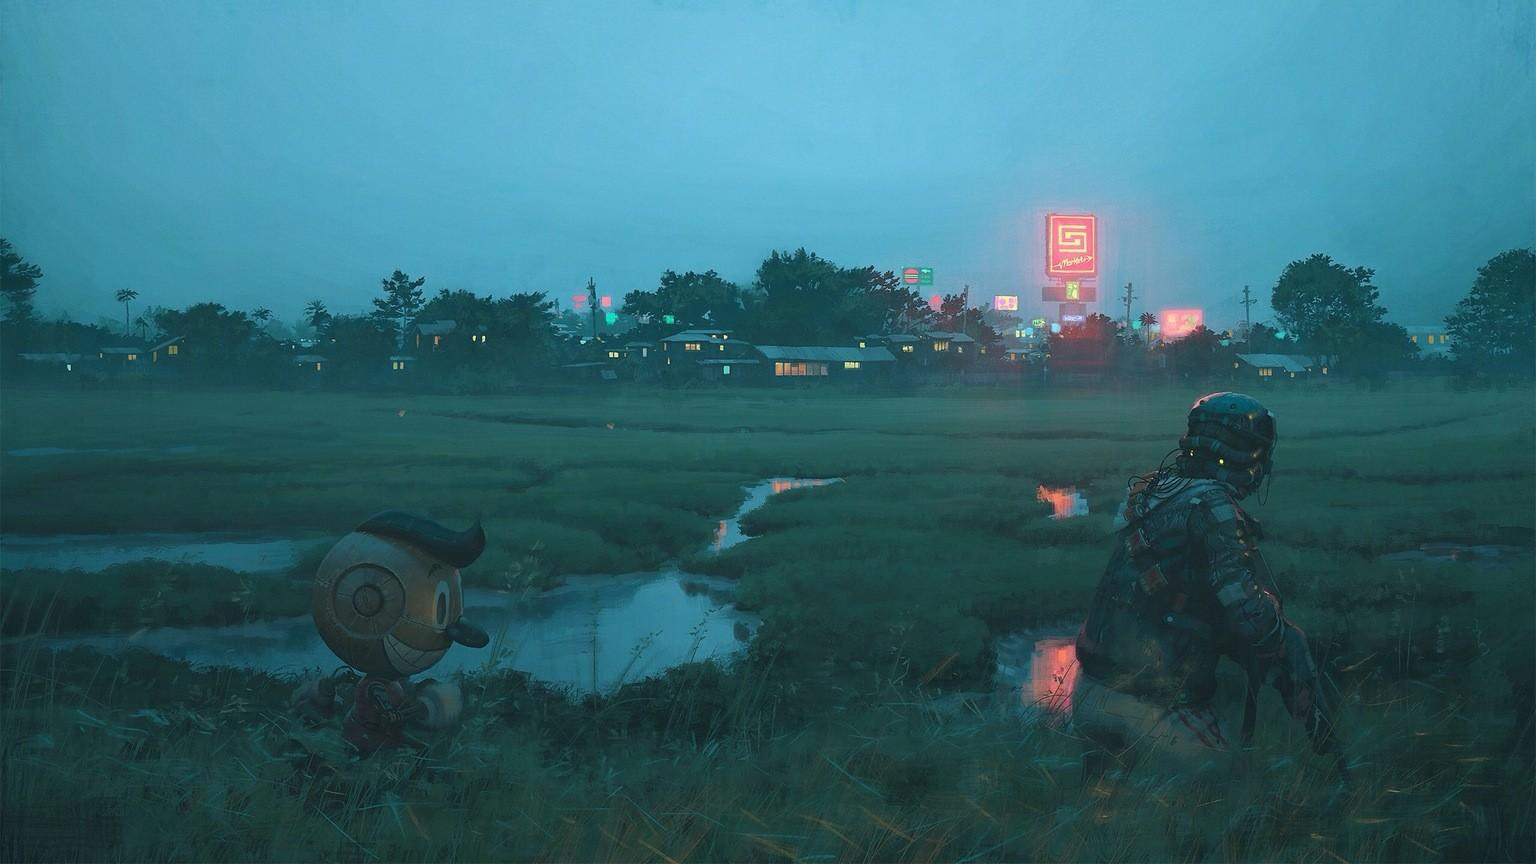 4525577 Stålenhag, fiction wallpapers